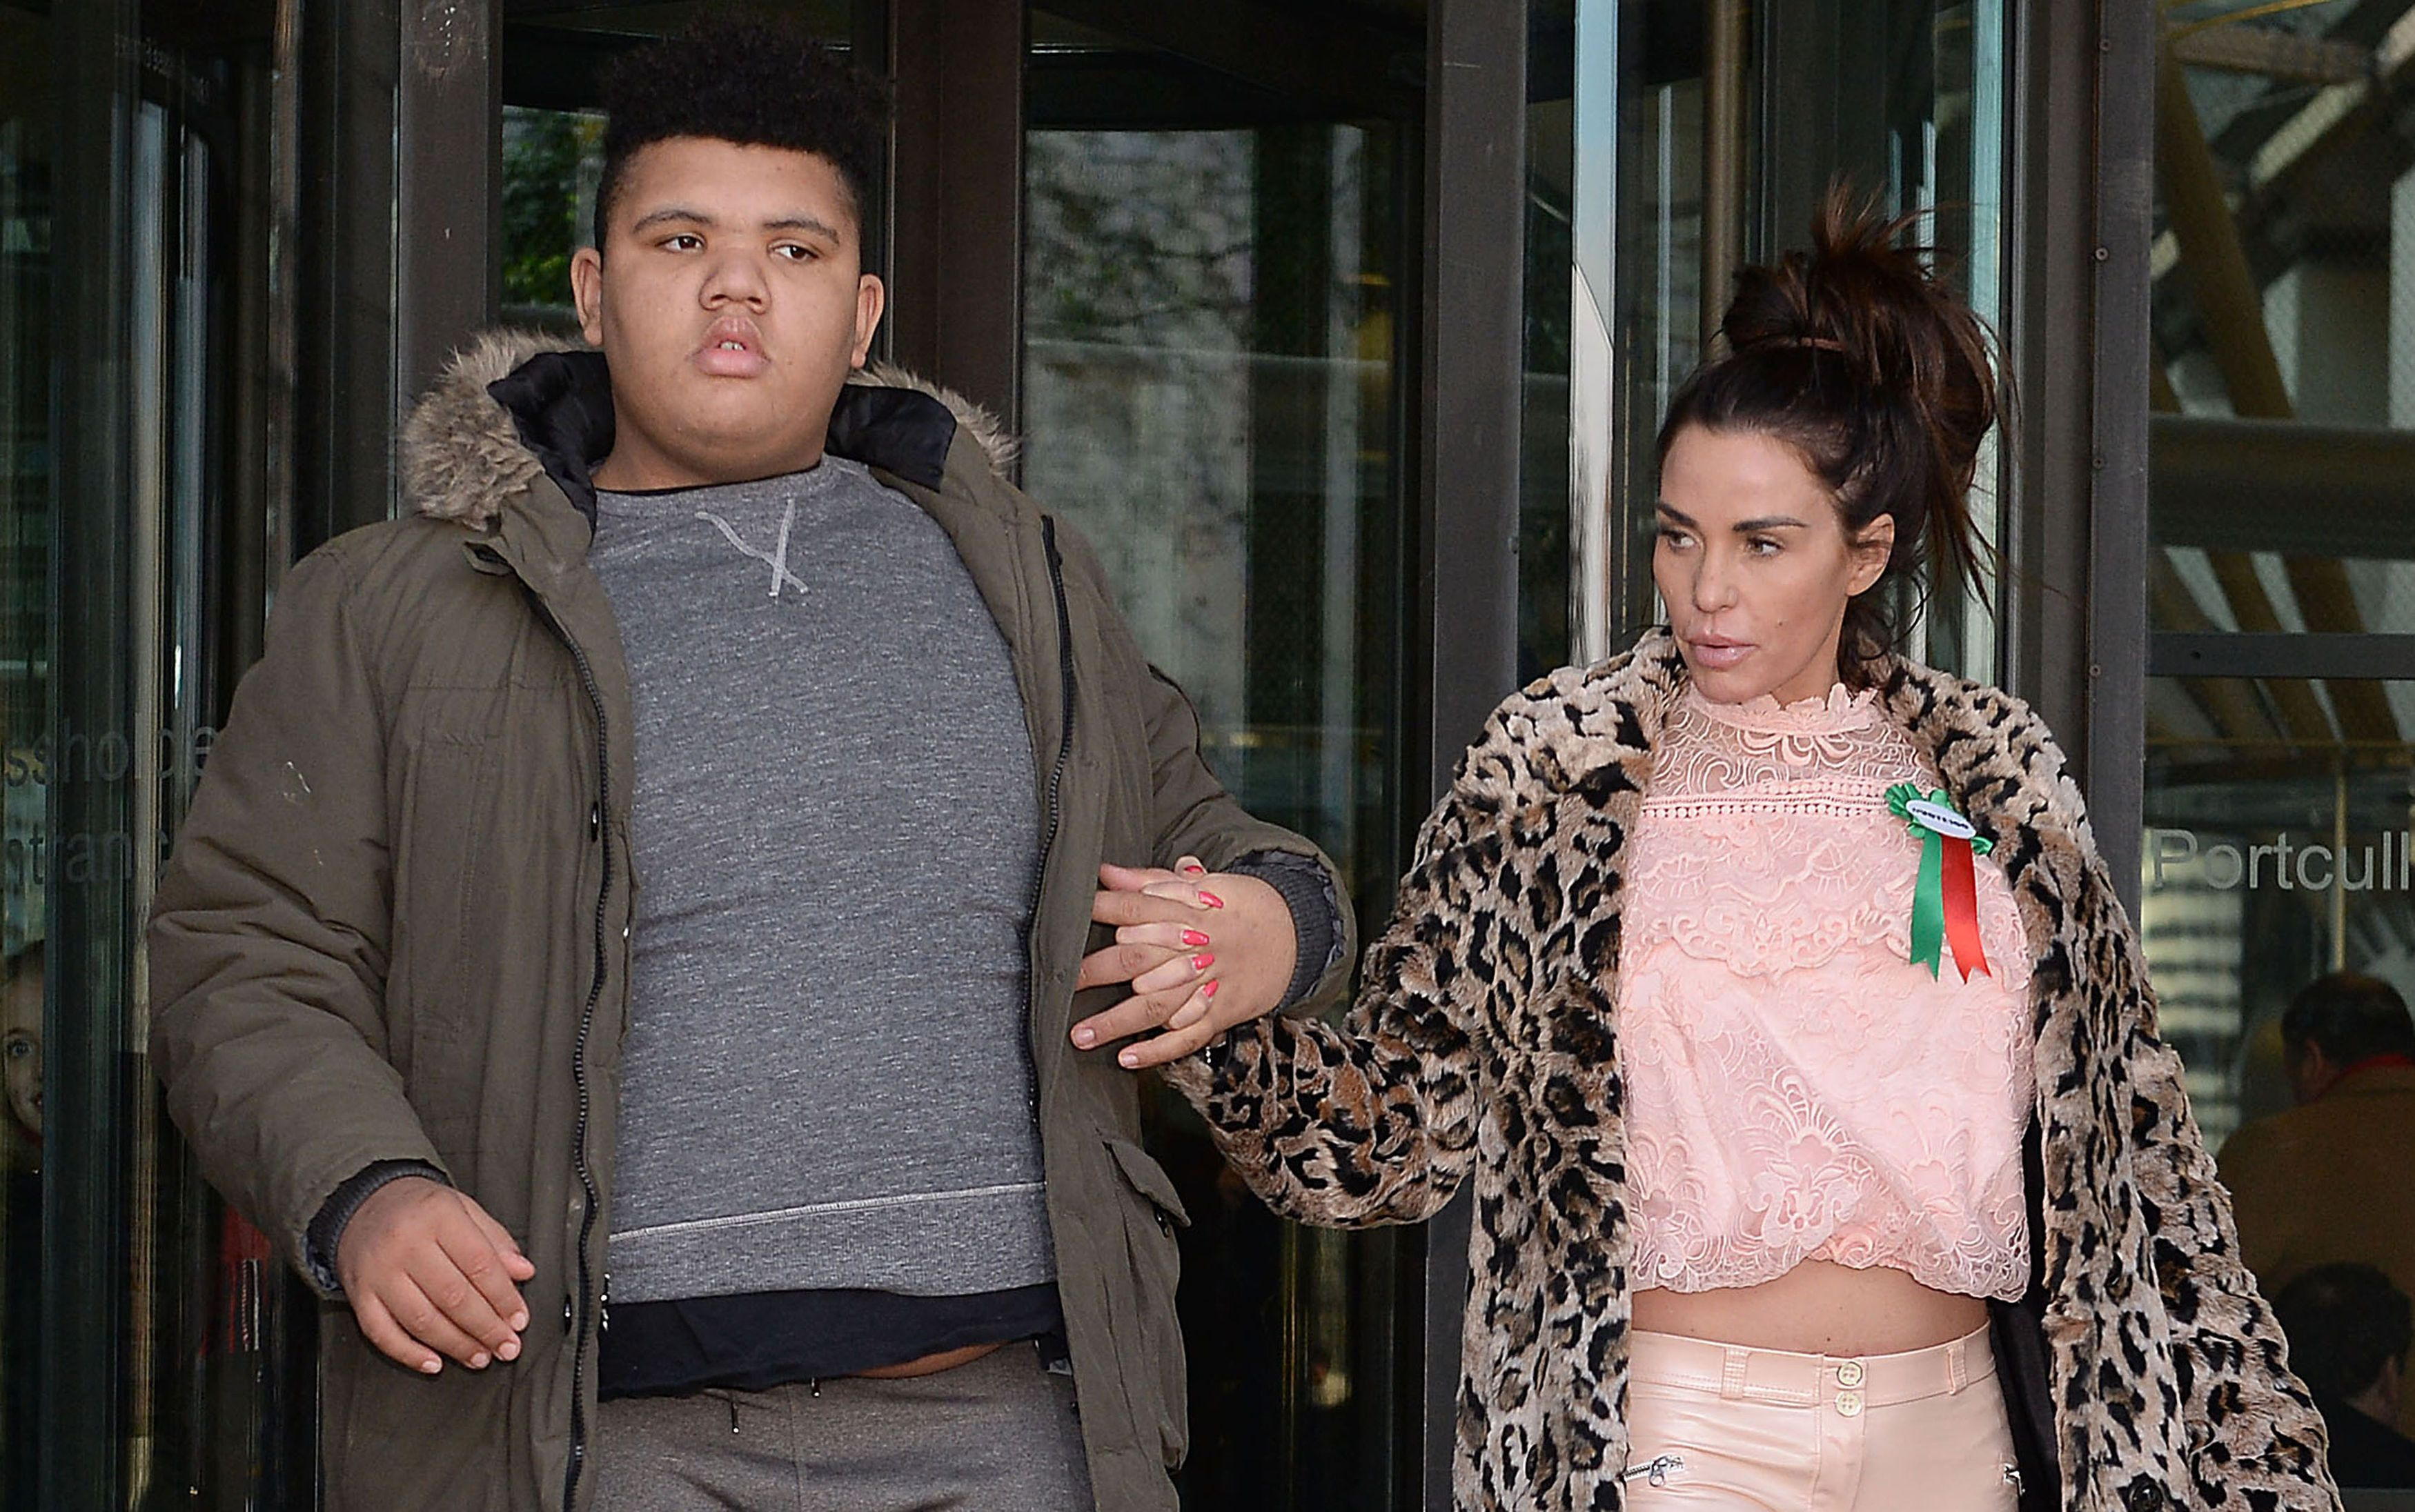 Katie Price Condemns 'Disgusting' Christmas Jumpers Mocking Son